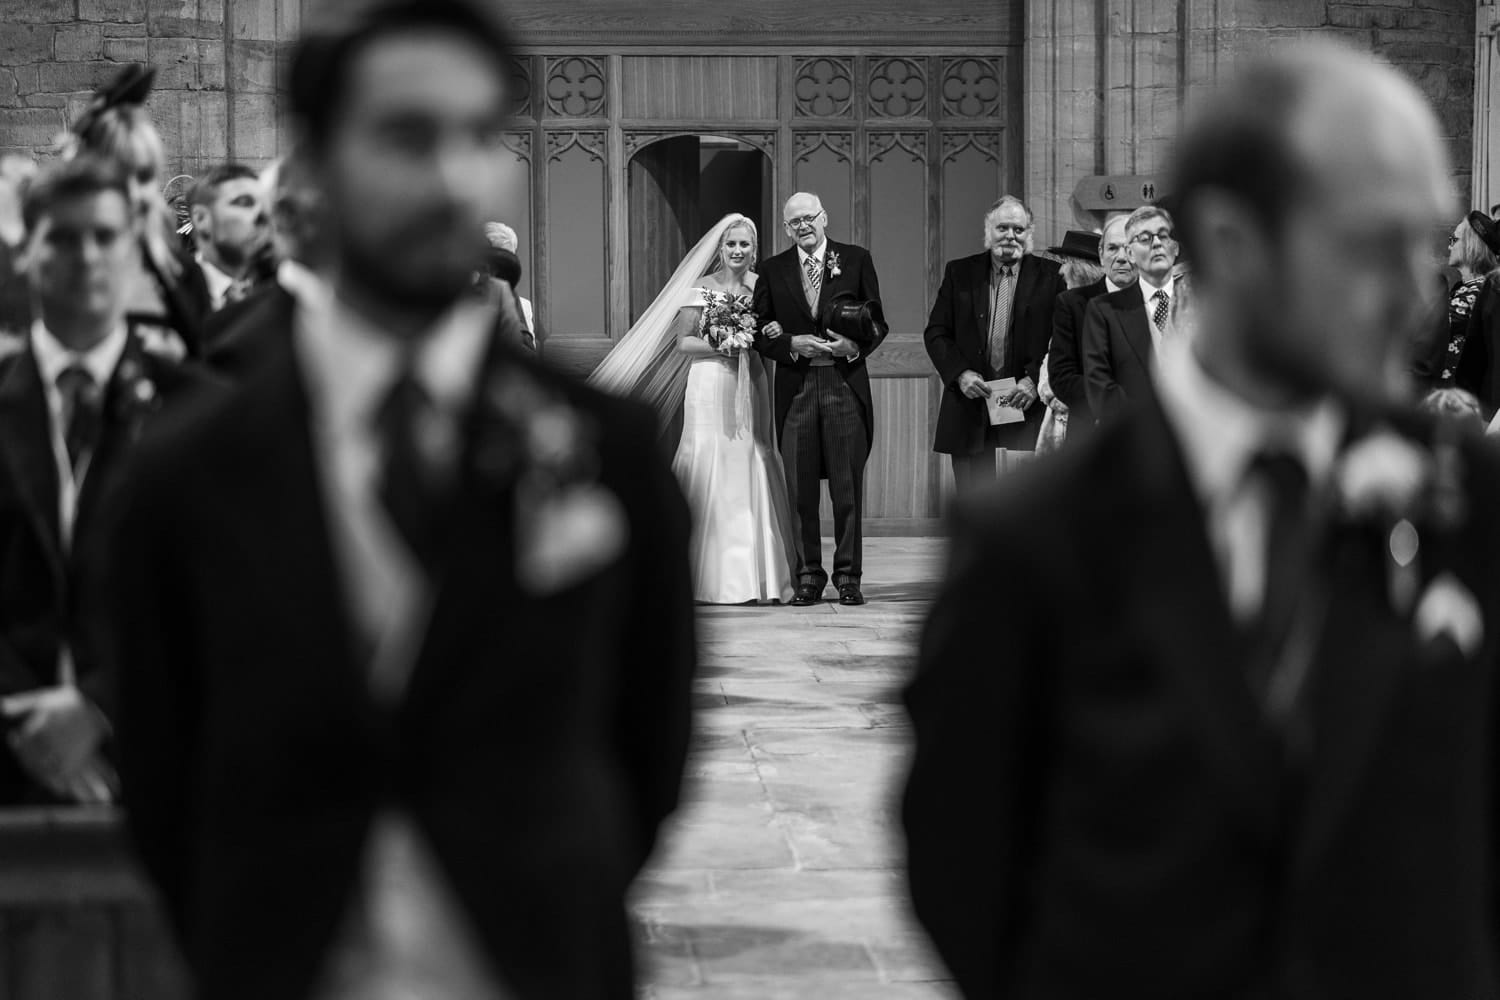 Bride walks up church aisle with father